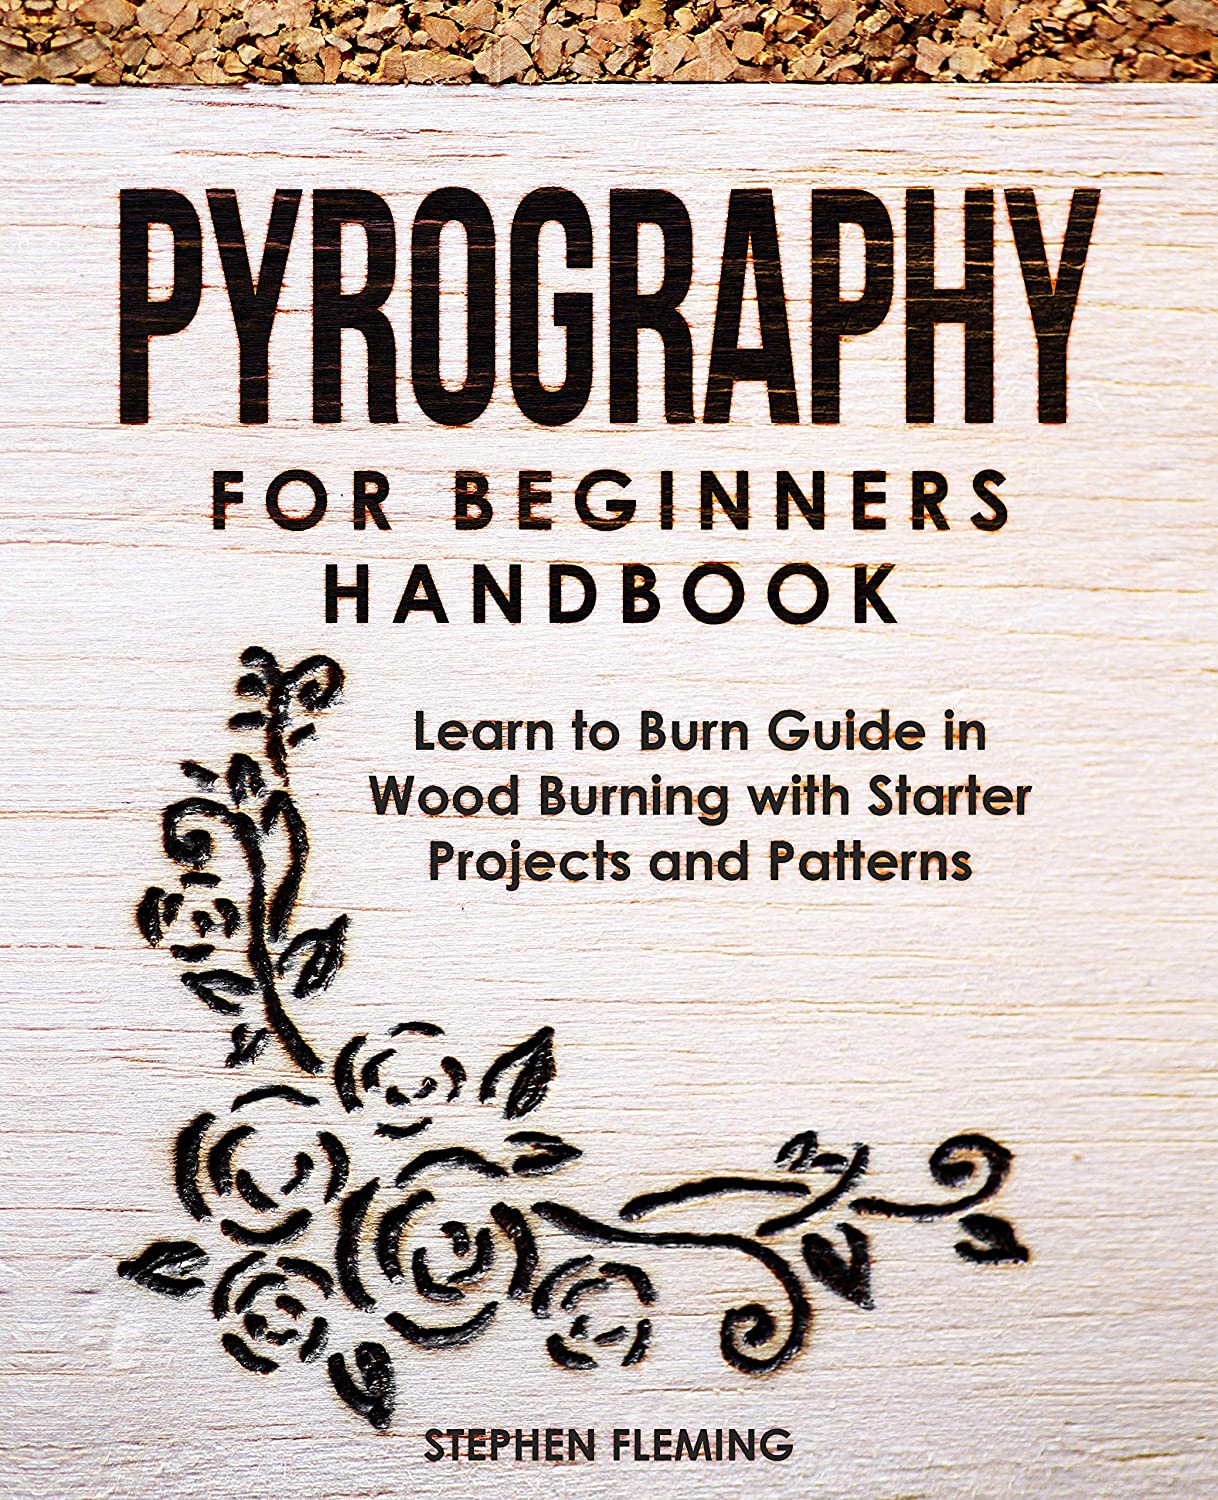 Amazon Com Pyrography For Beginners Handbook Learn To Burn Guide In Wood Burning With Starter Projects And Patterns Diy Series Book 2 Ebook Fleming Stephen Kindle Store